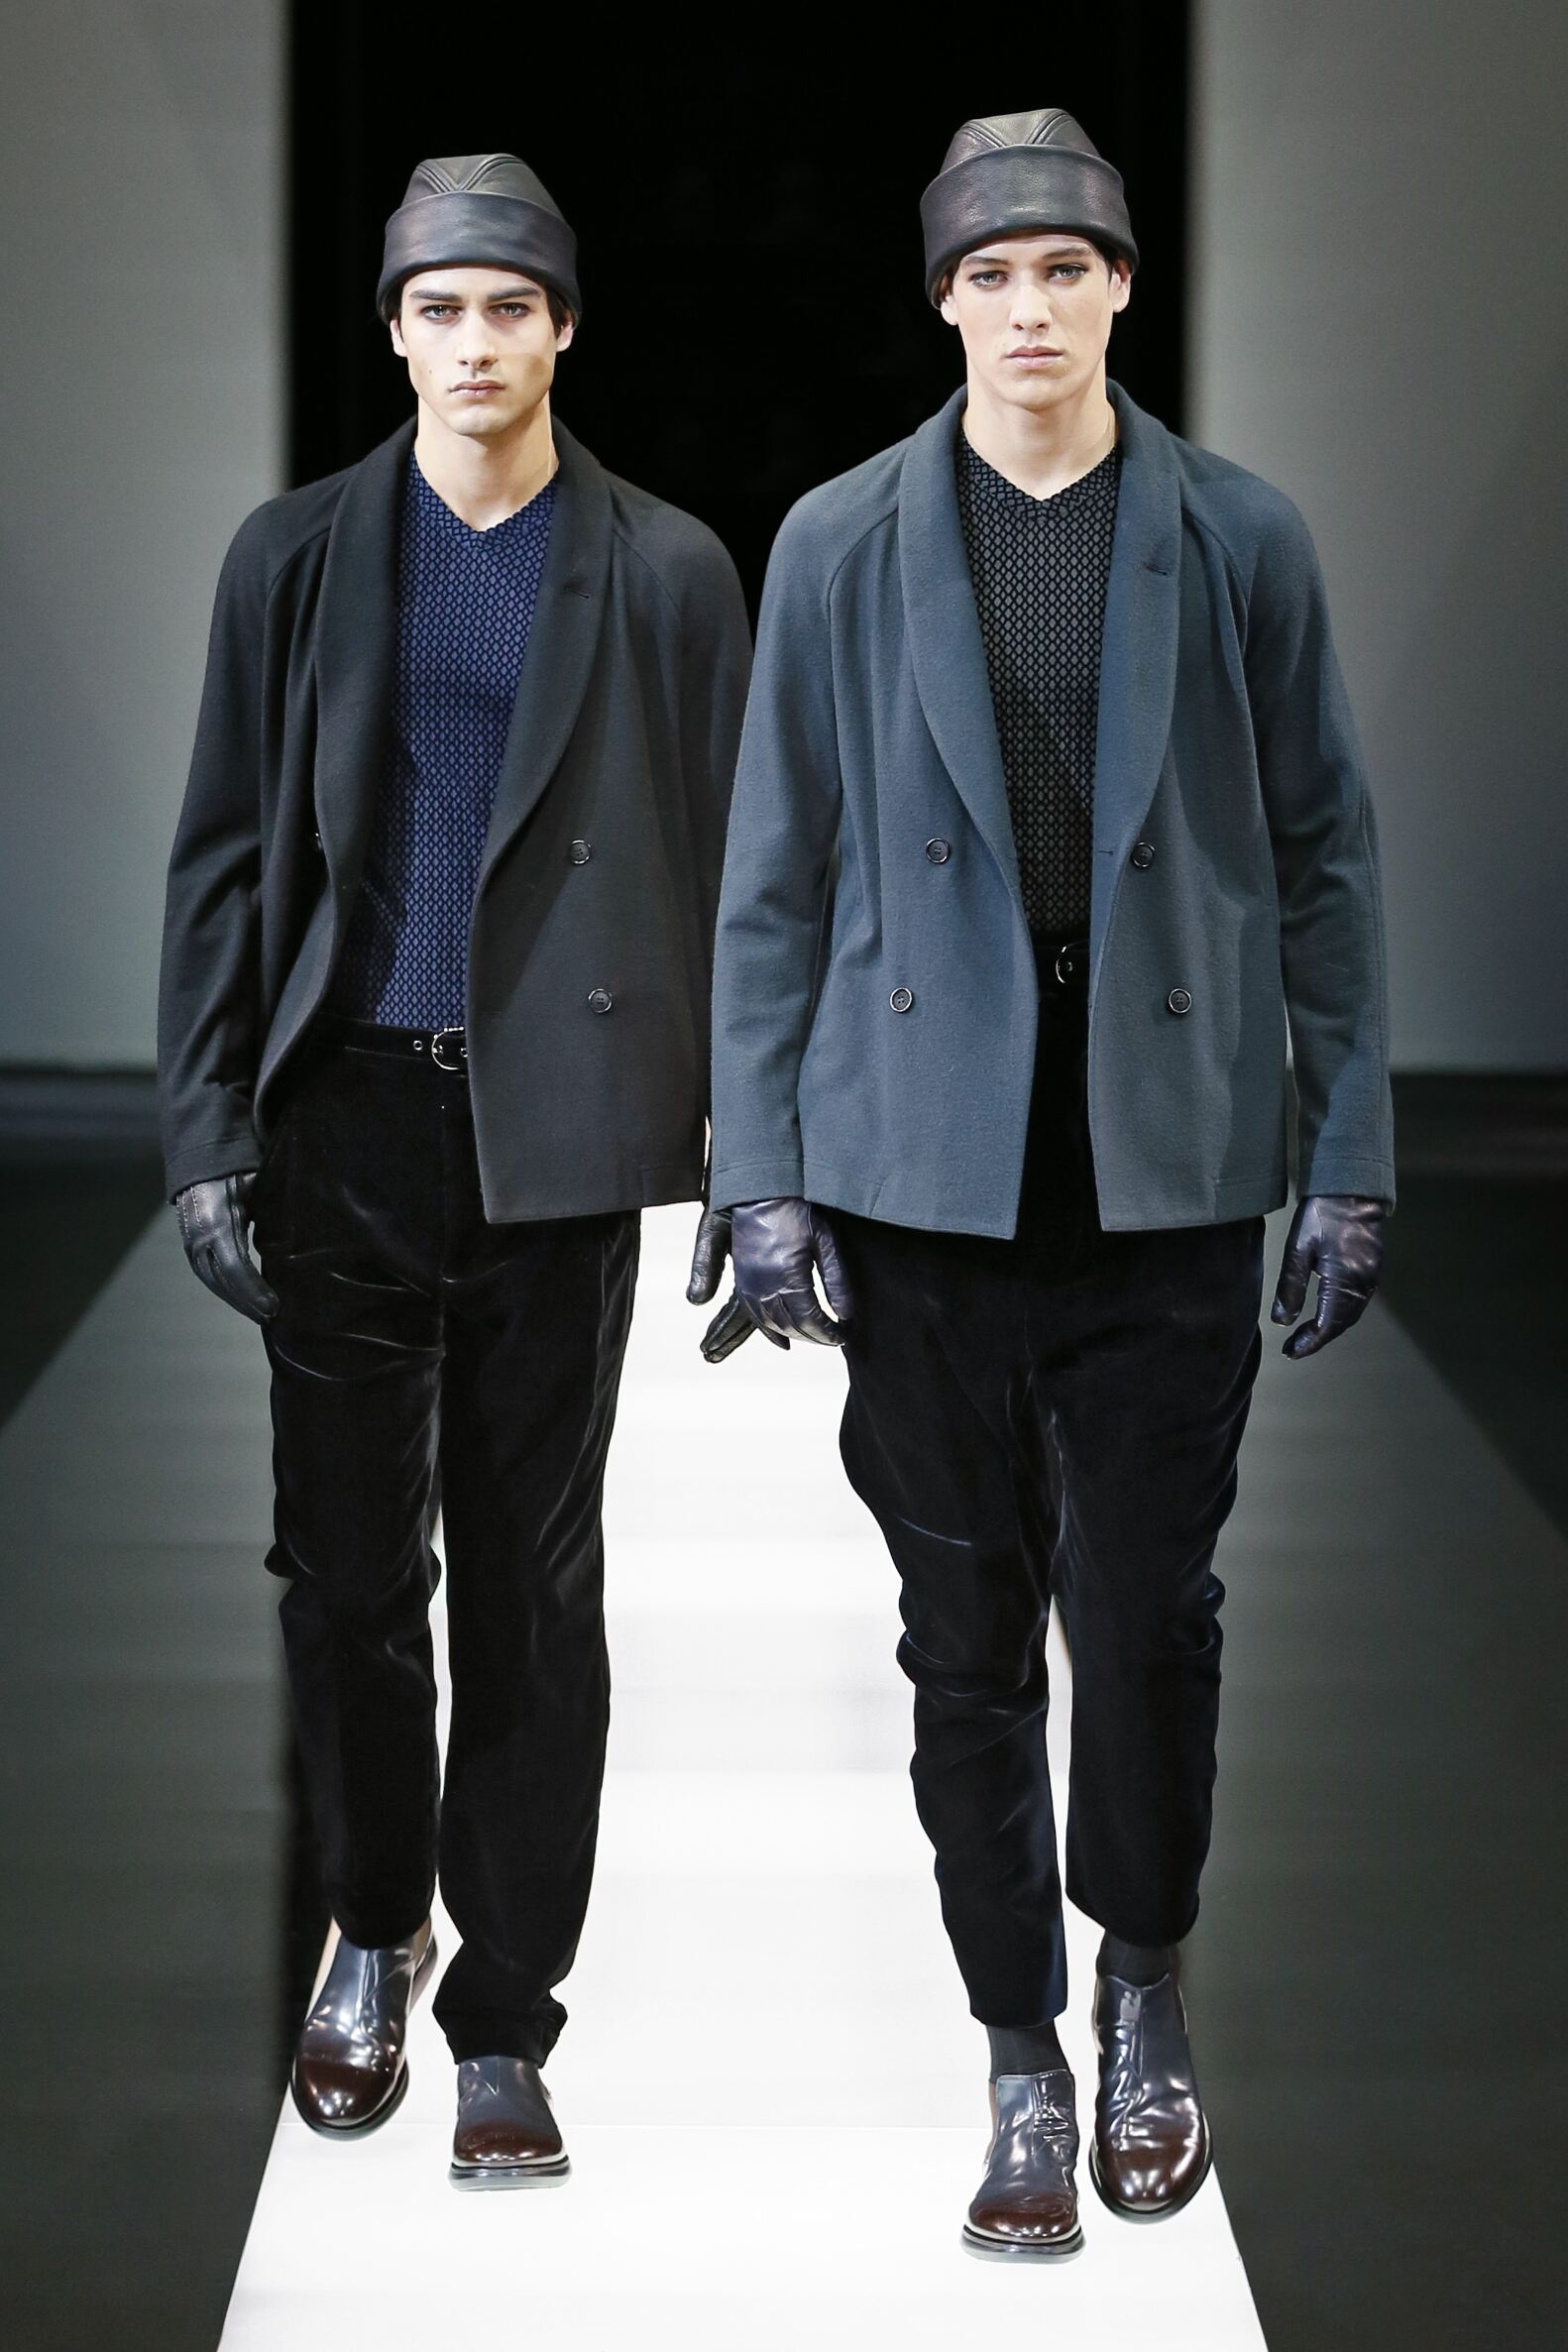 Fall Giorgio Armani Collection Fashion Men Models